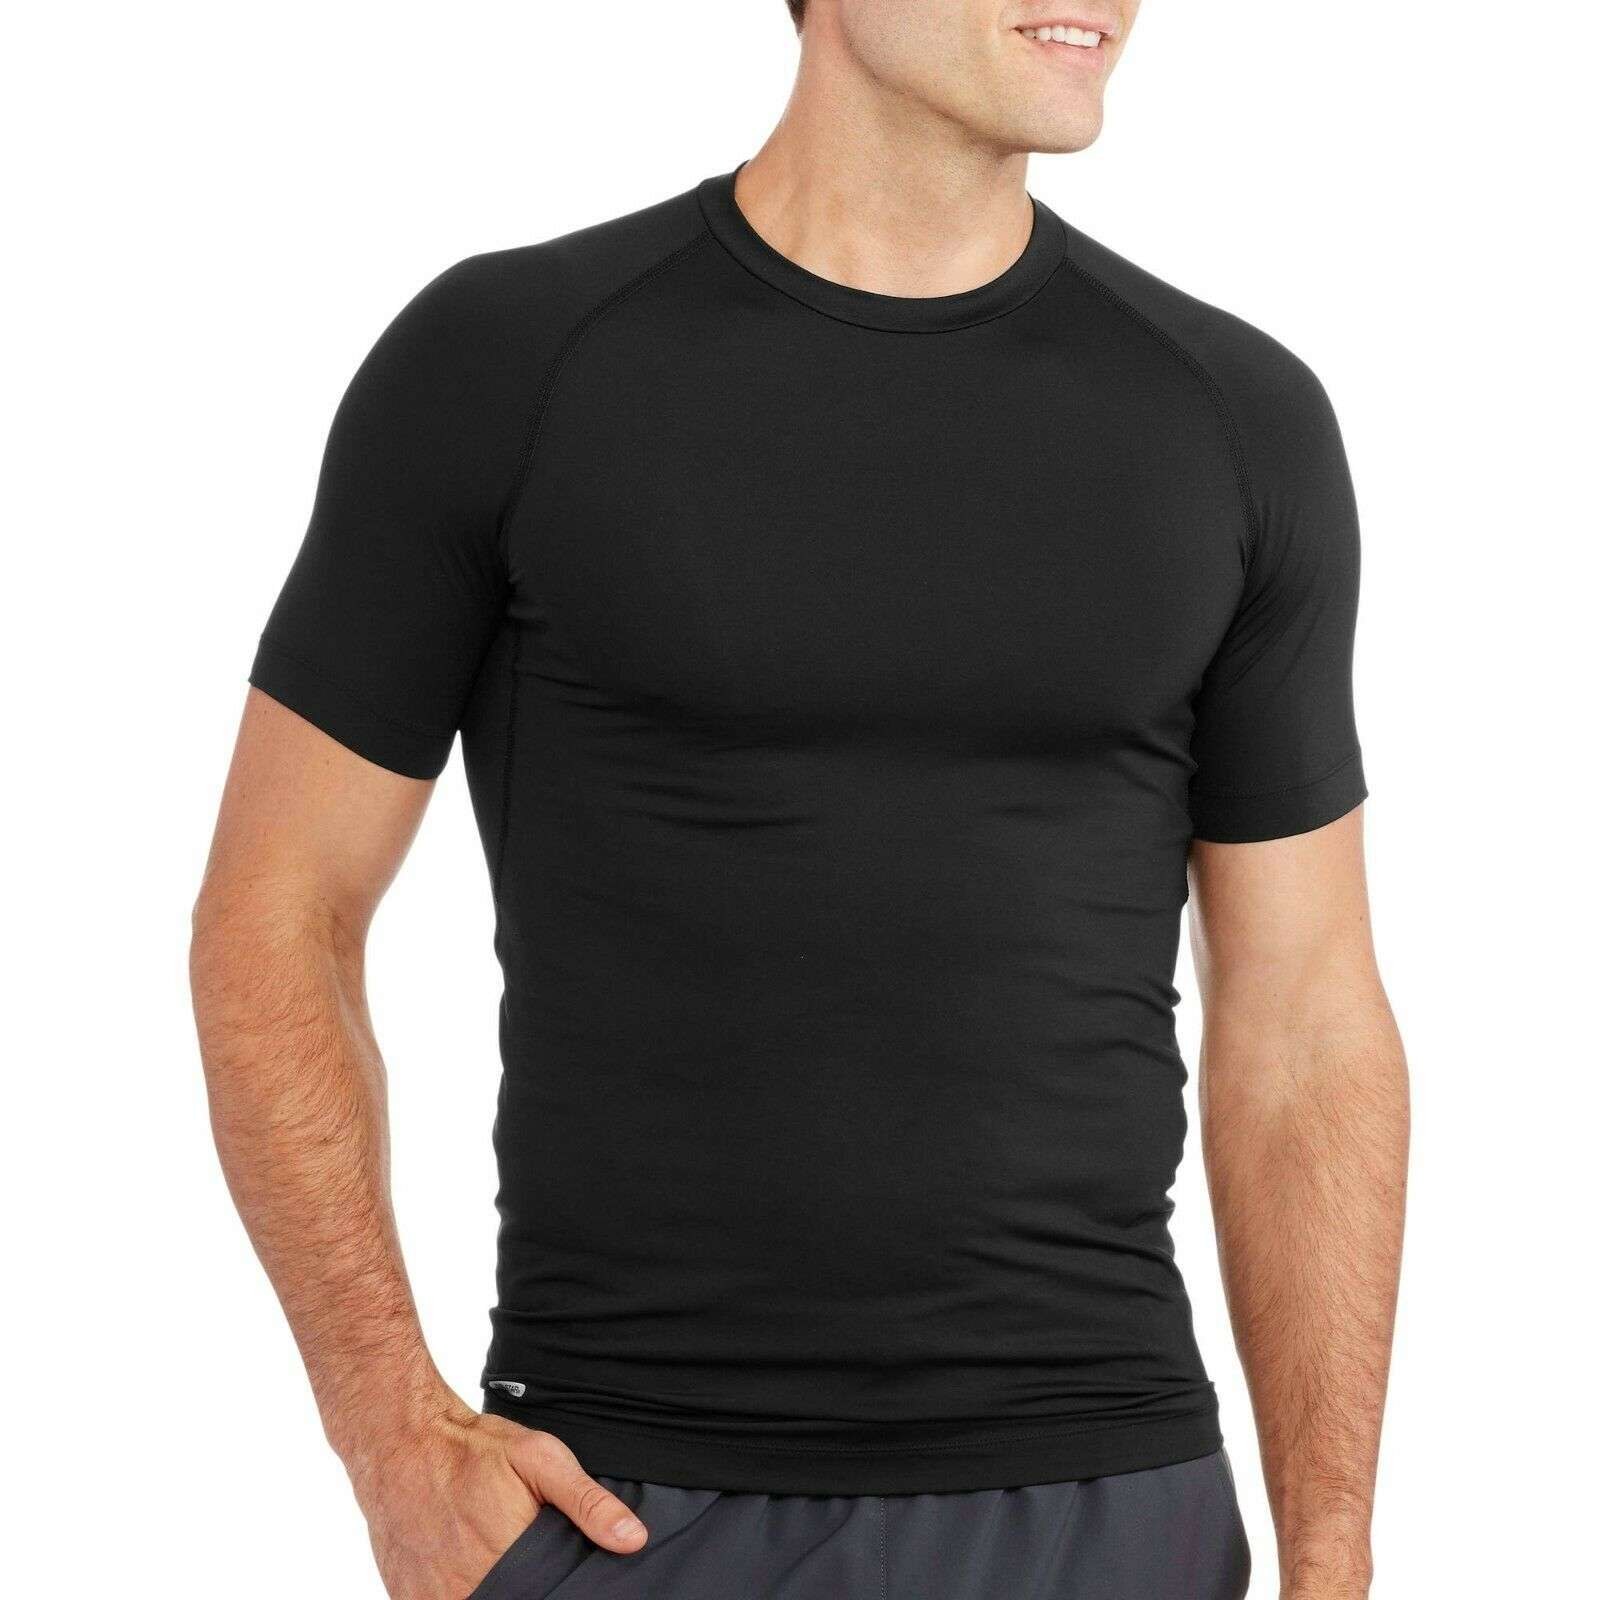 Starter Men's Short Sleeve Compression Top, Black